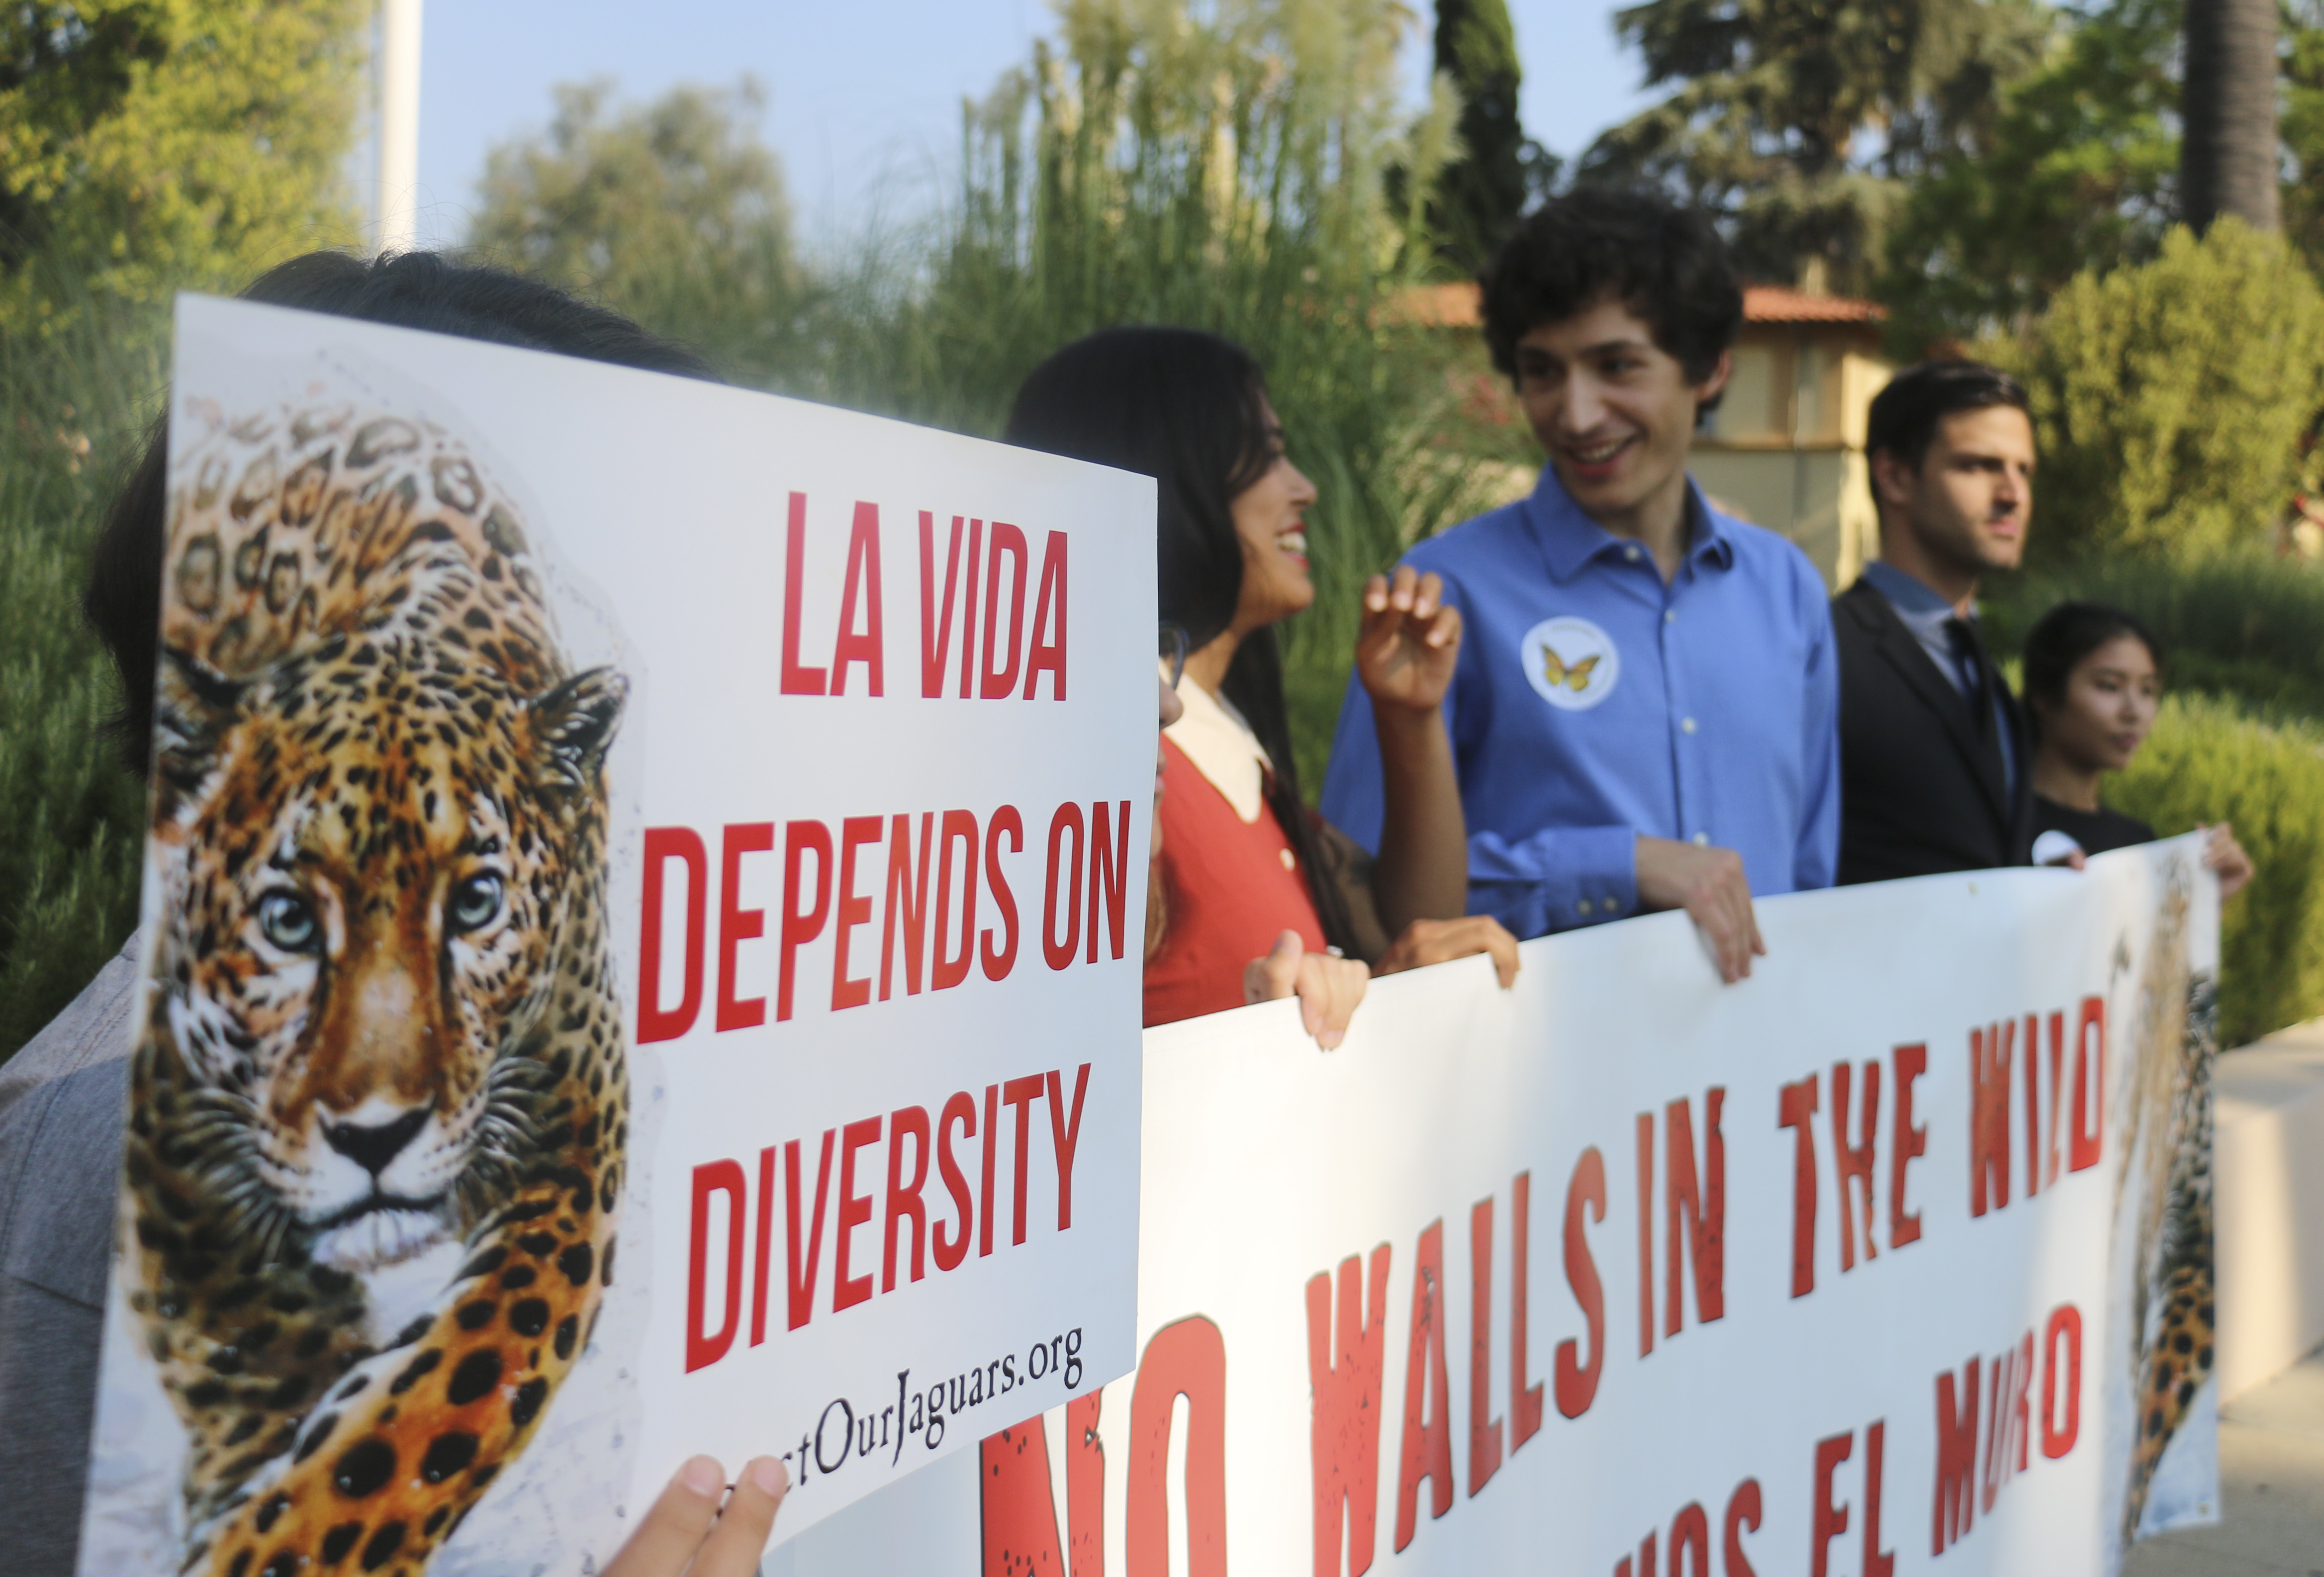 File photo shows environmental and immigration protesters in Pasadena, California, Aug. 7, 2018.